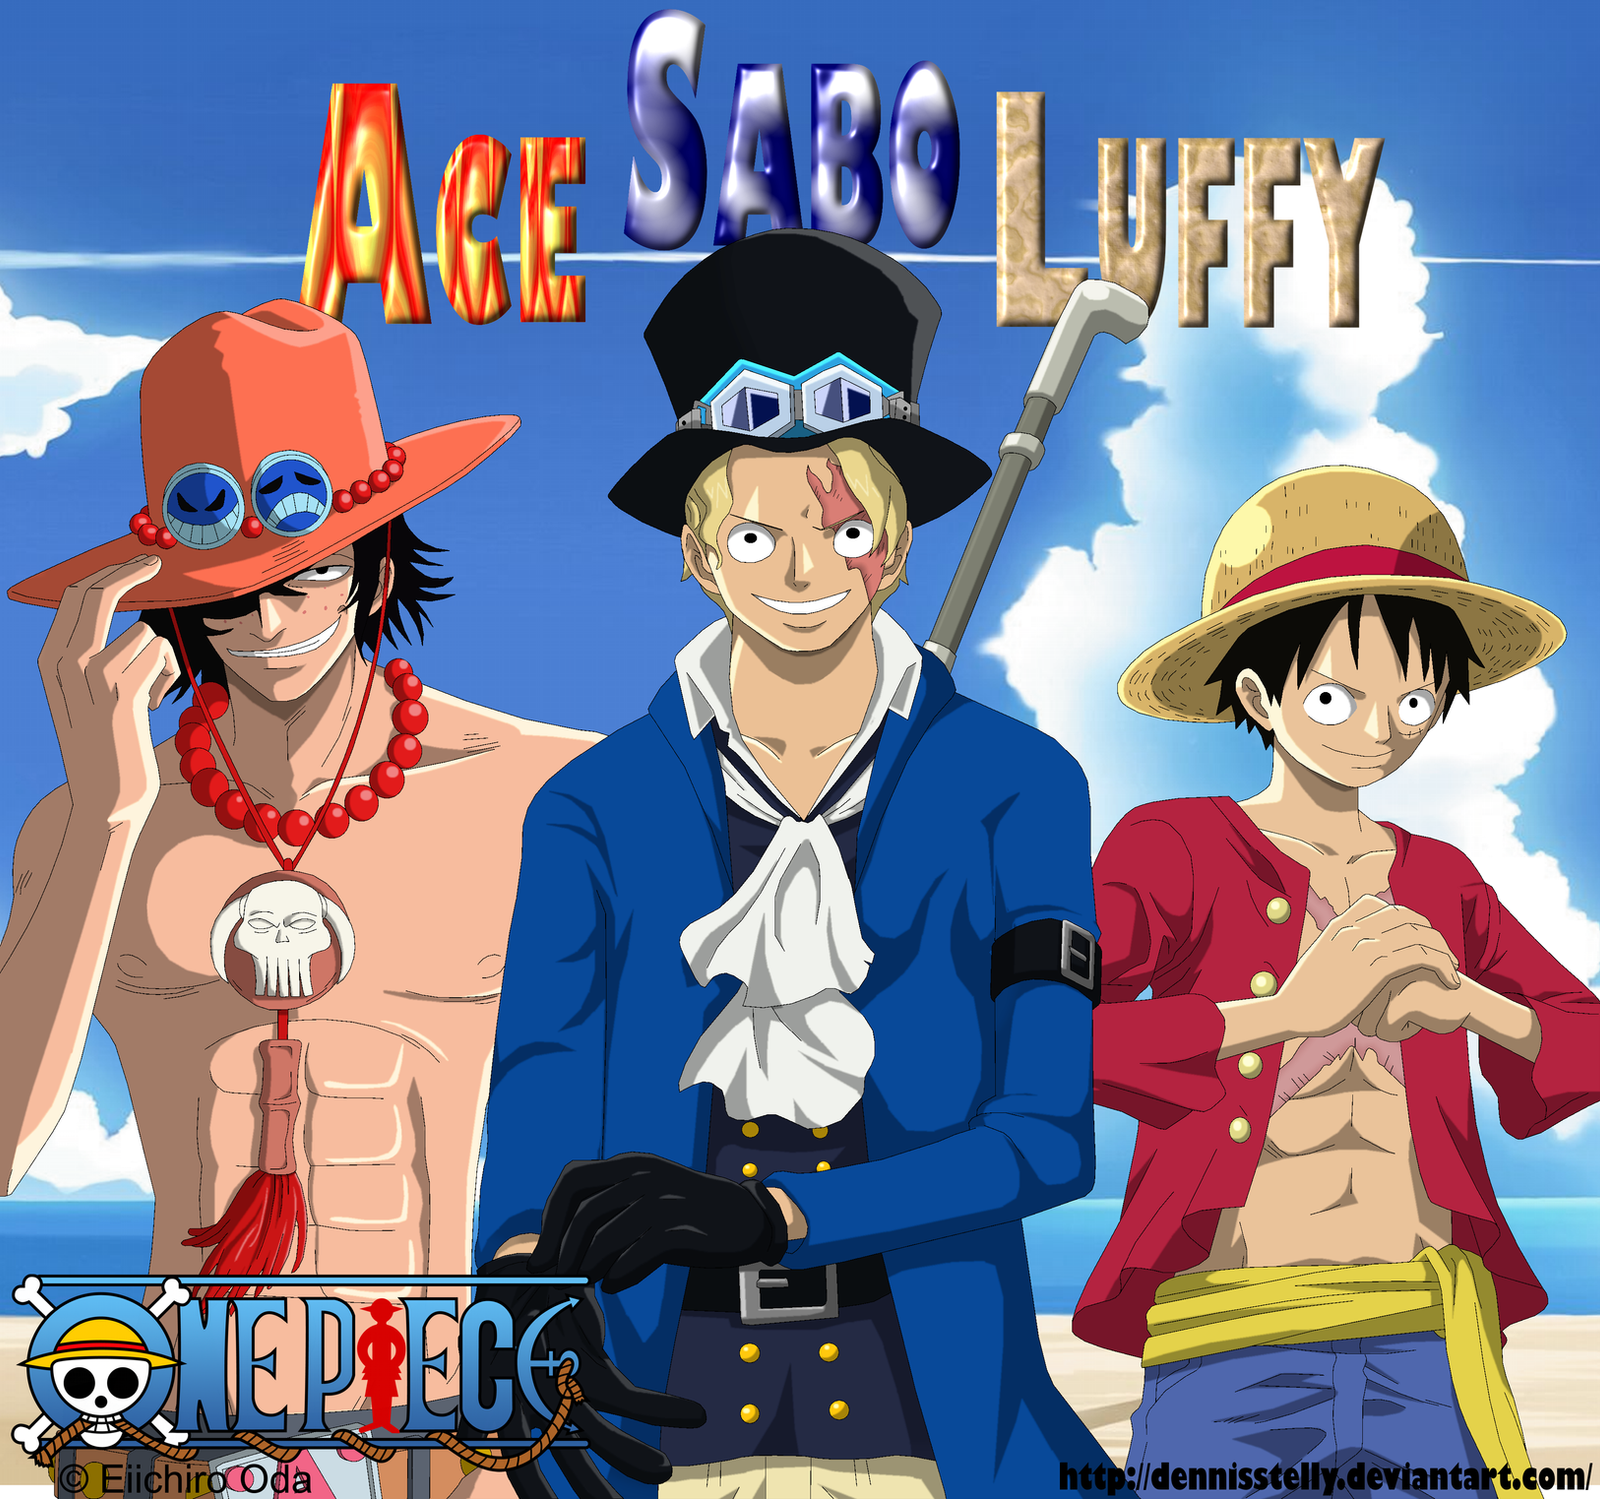 brothers ace and luffy meet